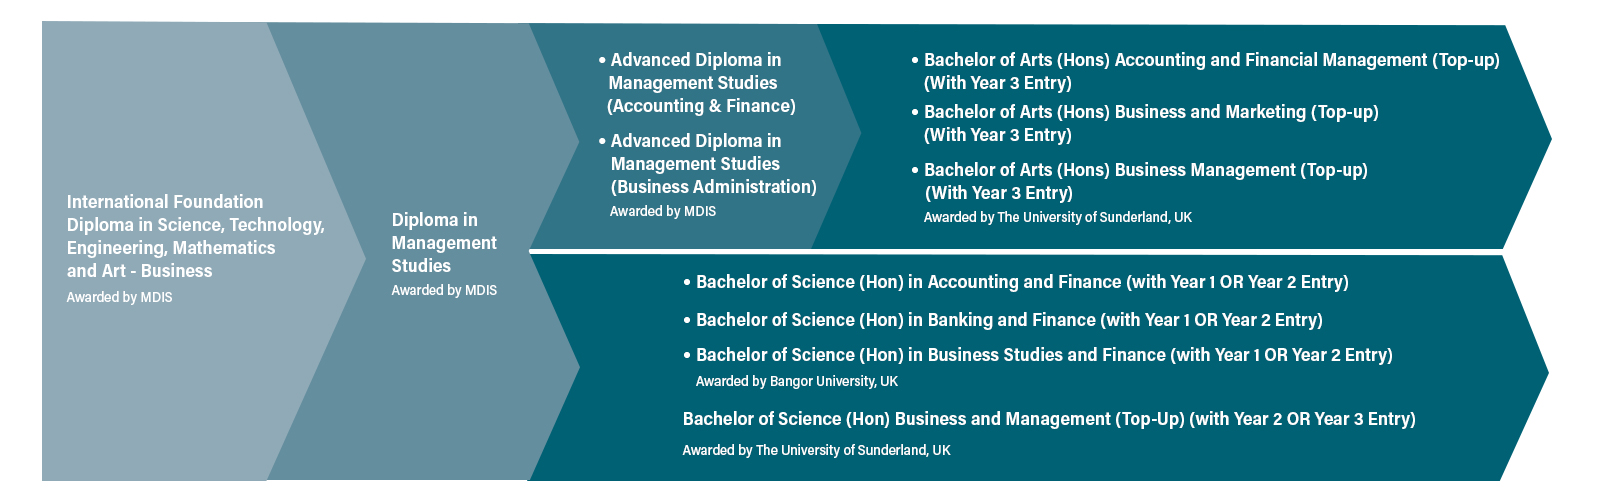 Bachelor of Arts (Hons) Accounting and Financial Management